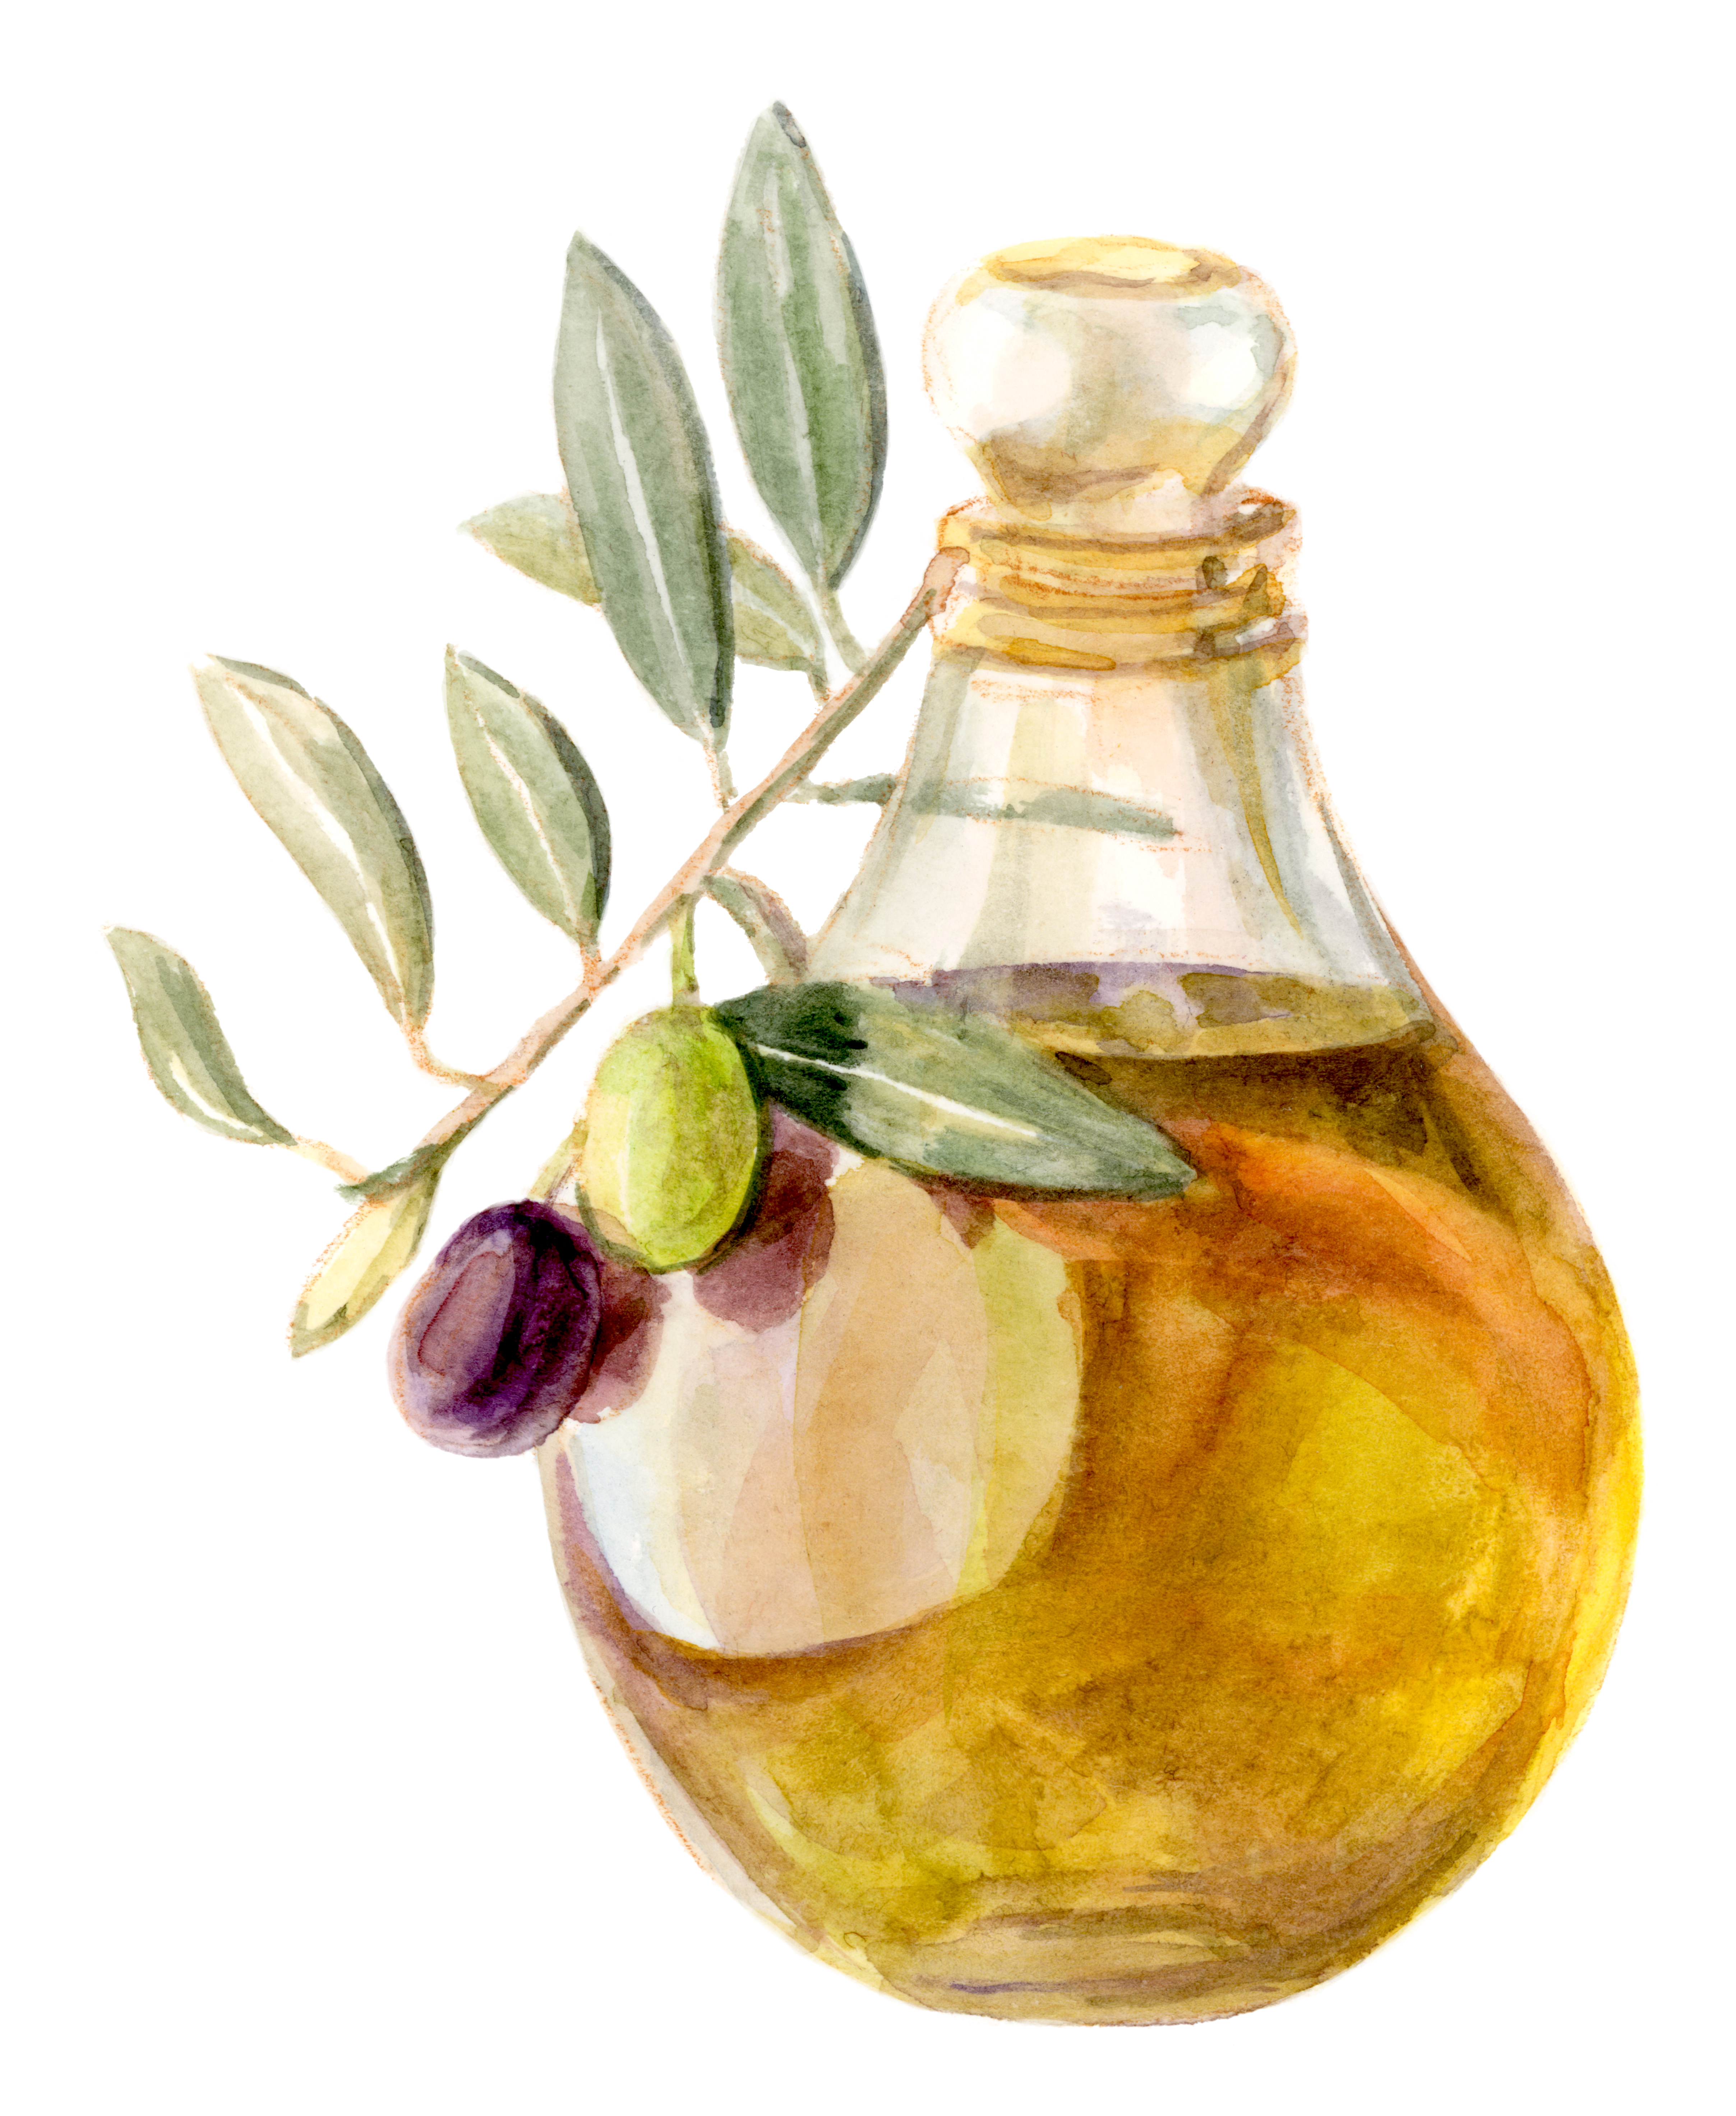 healthy extra-virgin olive oil for cooking